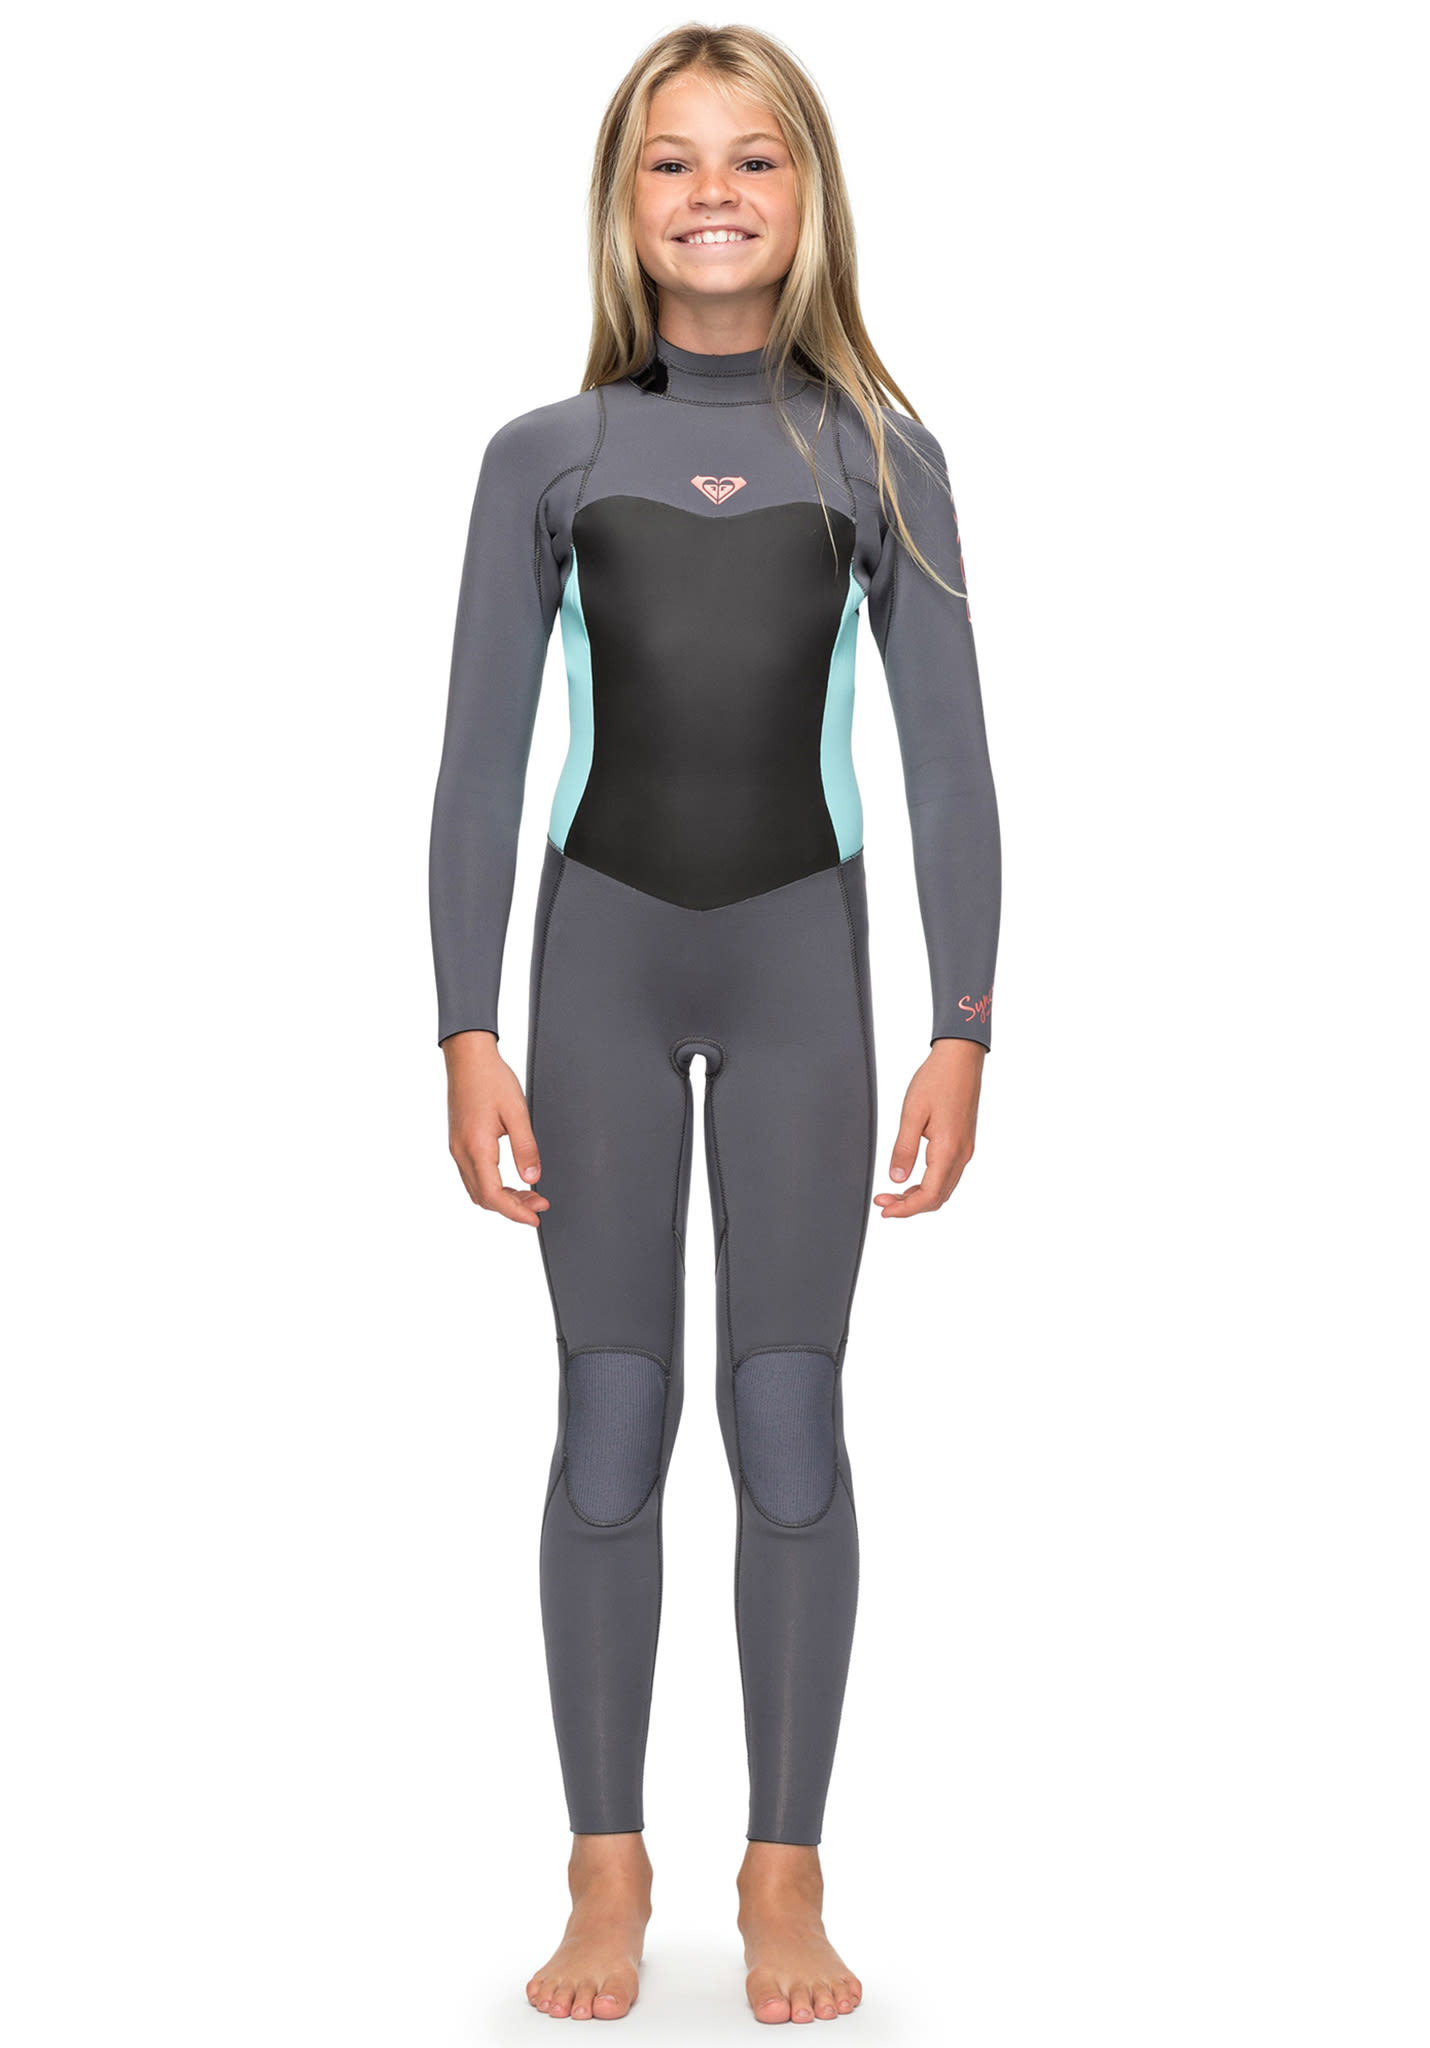 the best attitude 549e9 a730b Roxy Syncro 3/2mm Back Zip - Wetsuit for Kids Girls - Grey